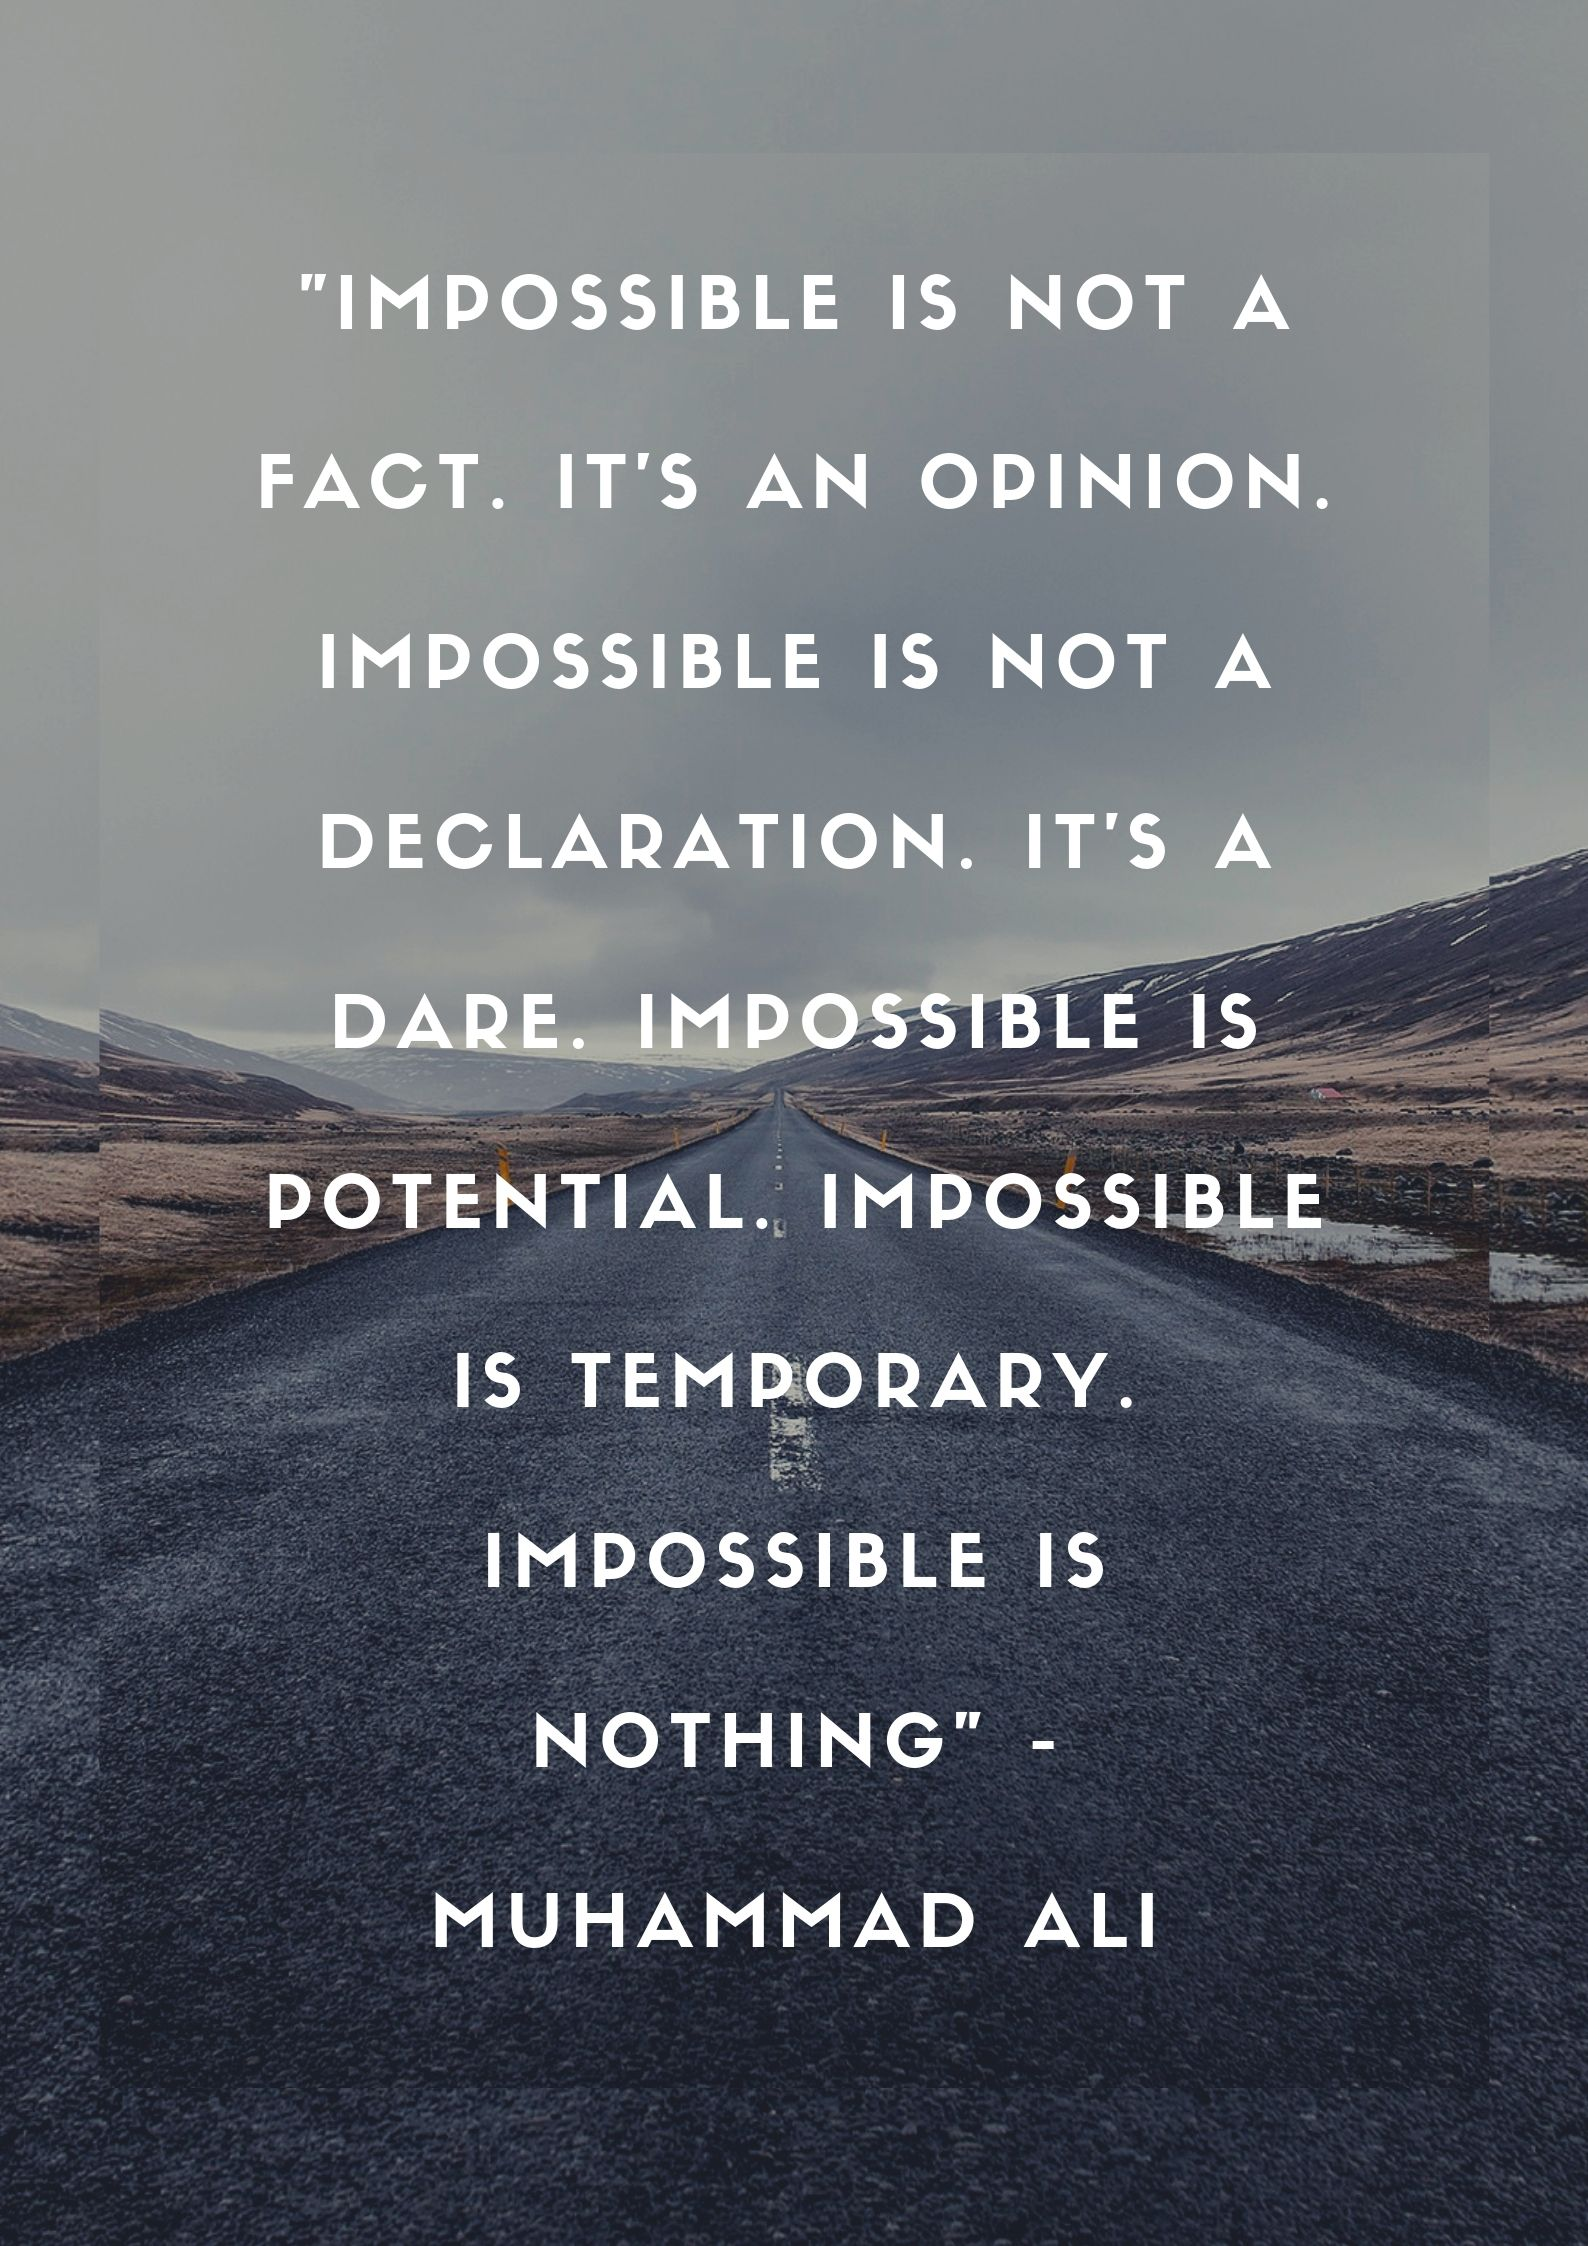 Impossible is not a fact. It's an opinion. Impossible is not a declaration. It's a dare. Impossible is potential. Impossible is temporary. Impossible is nothing (for JamesRunsFar.com).jpg